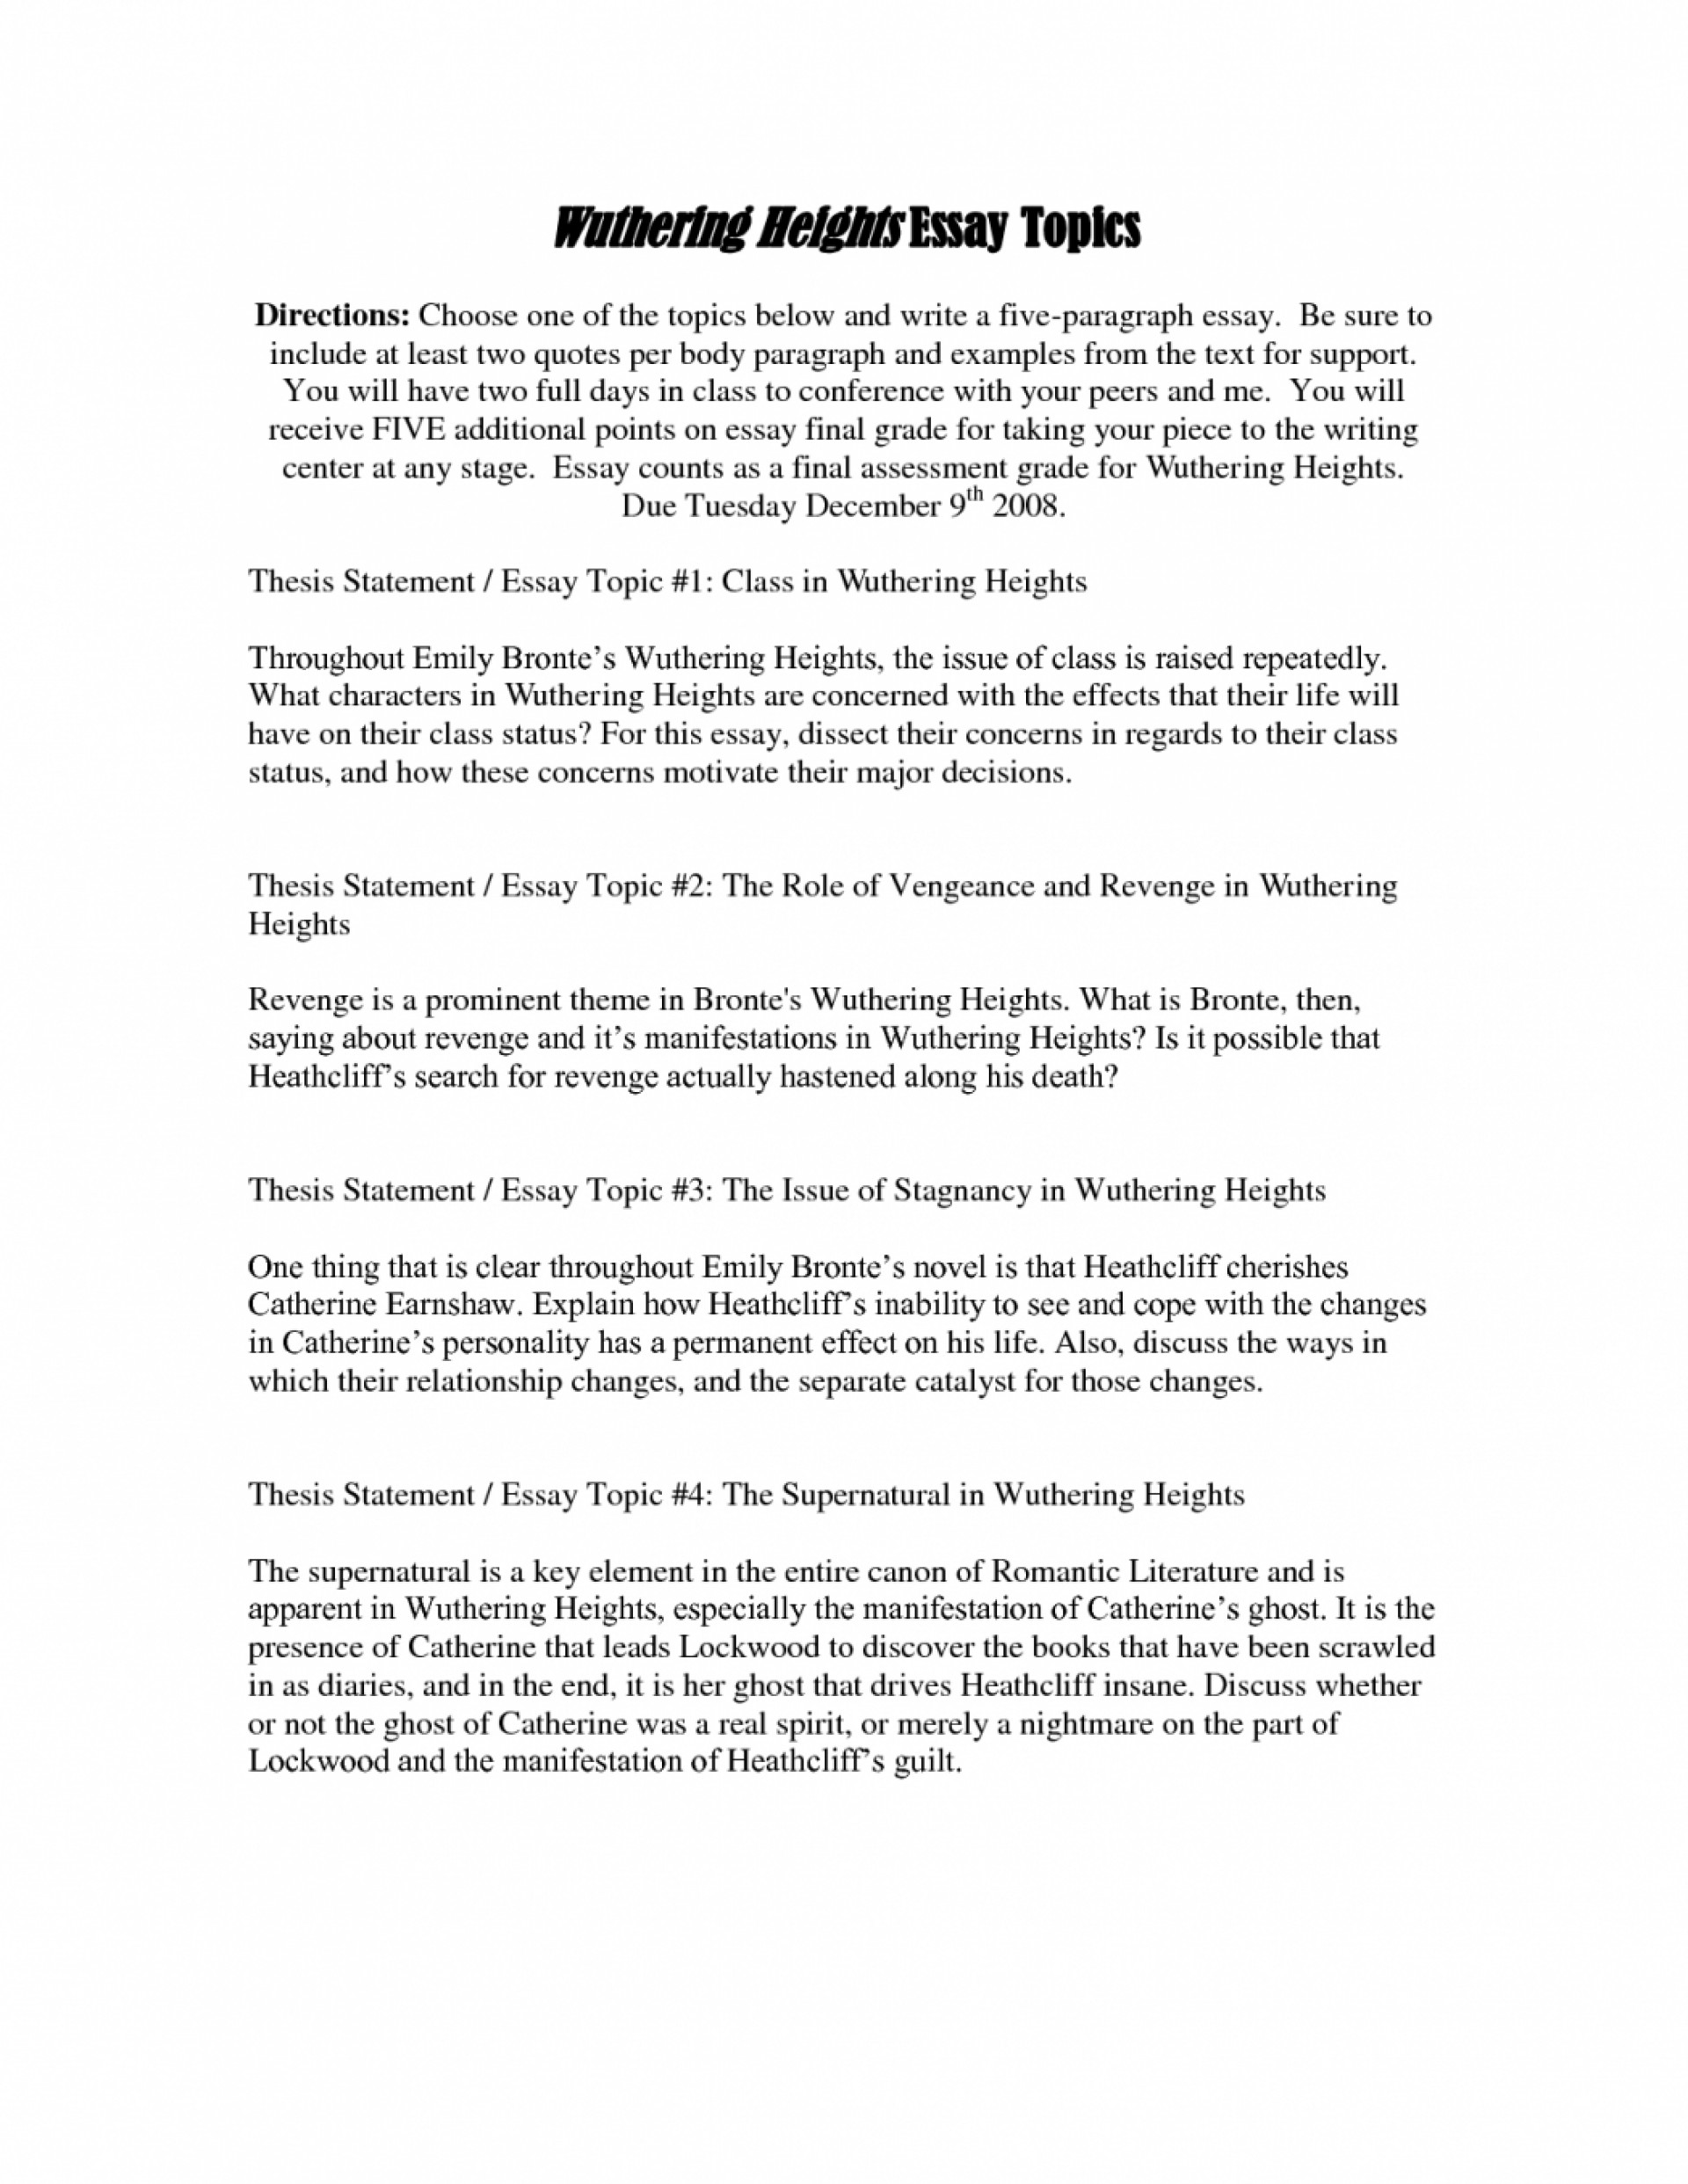 007 Define Thesis Statement In An Essay Wikipedia Step Six From To Writing 8au18 Dbq 1048x1356 Stirring Descriptive Examples Definition Structure 1920